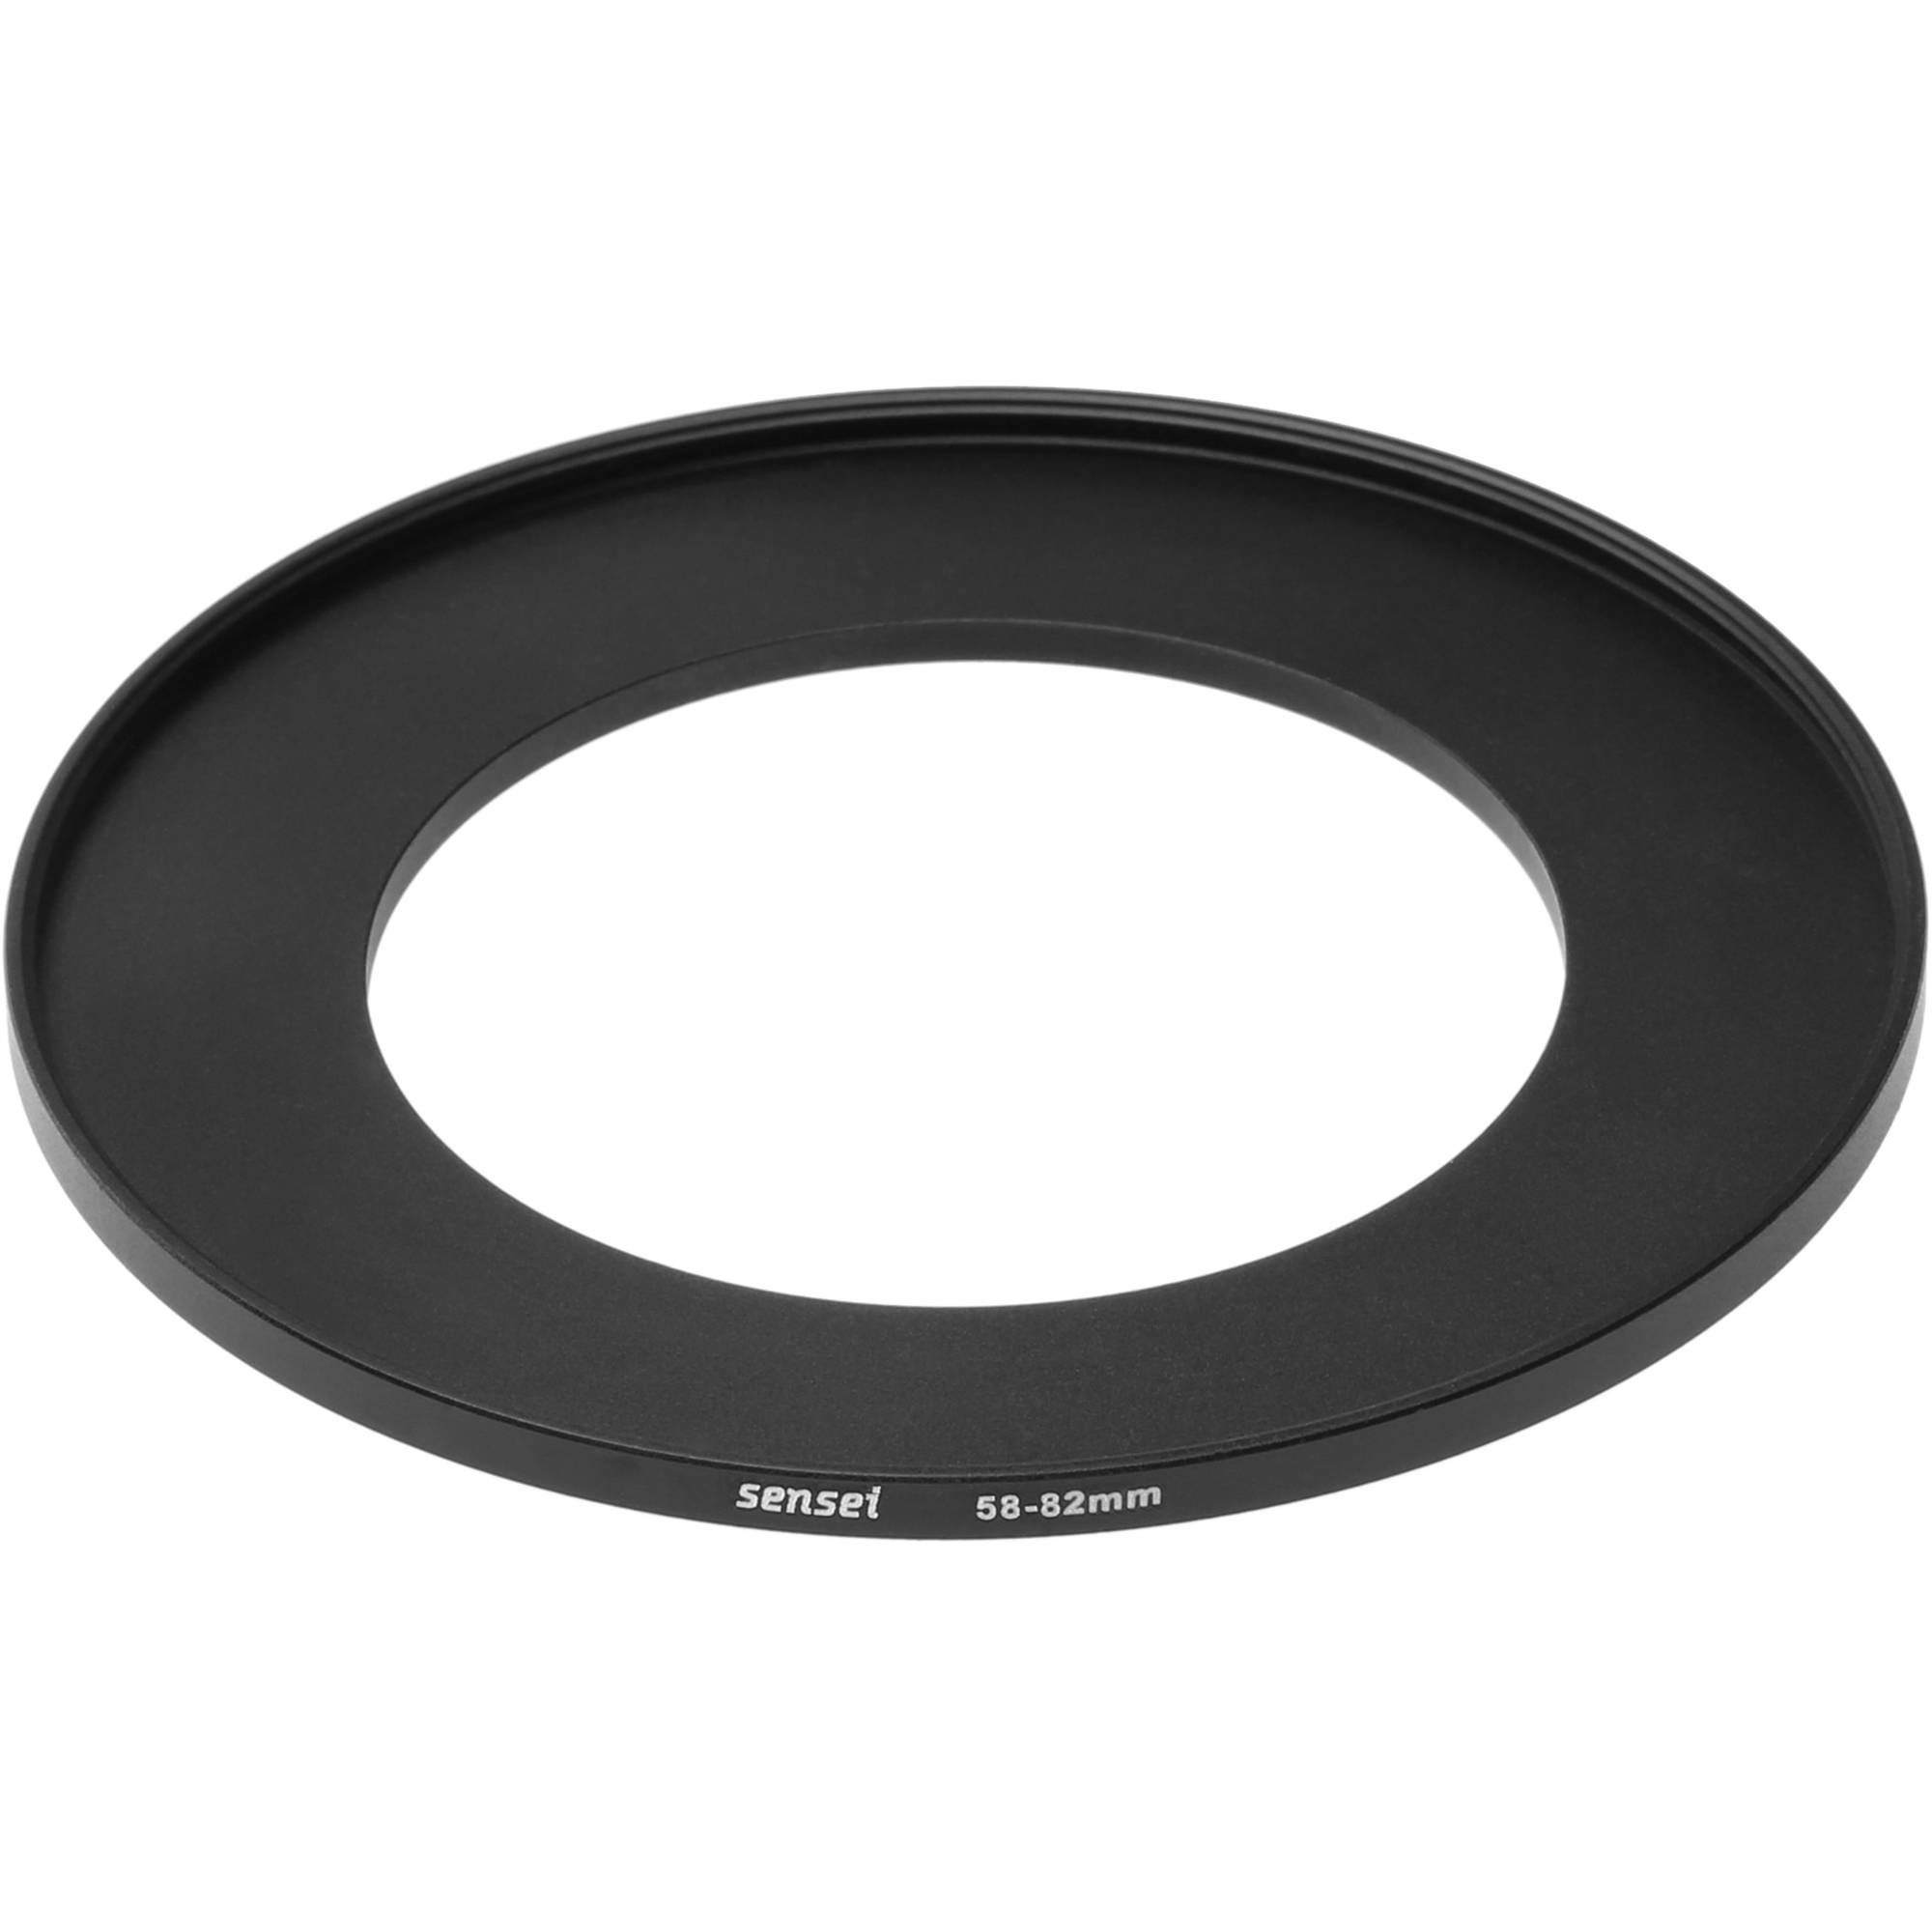 Sensei 58-82mm Step-Up Ring